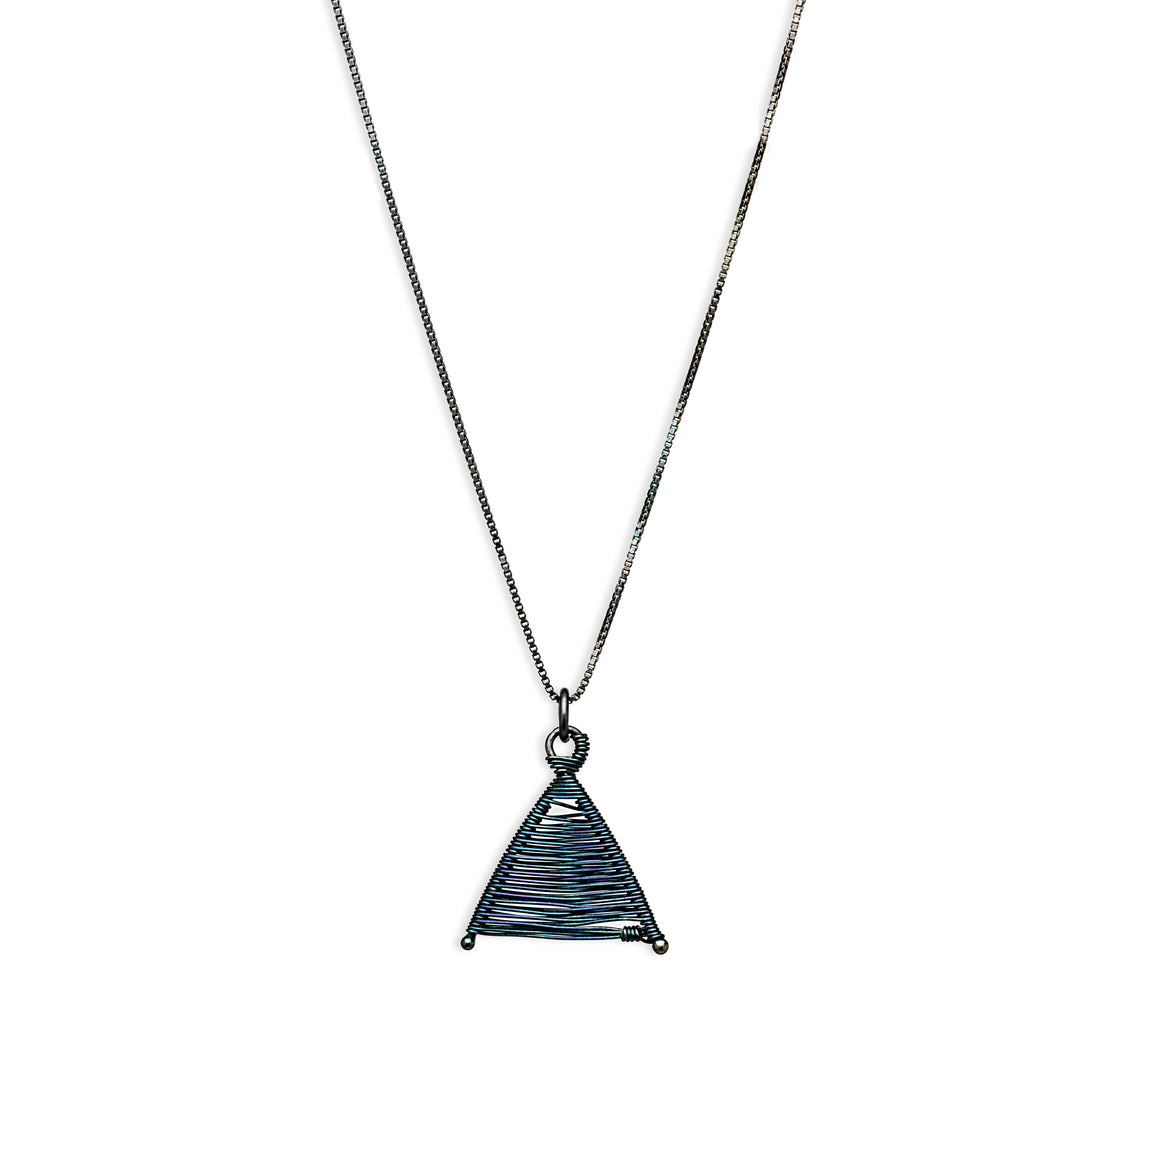 Woven Wishbone Necklace Oxidized Silver by Original Sin Jewelry